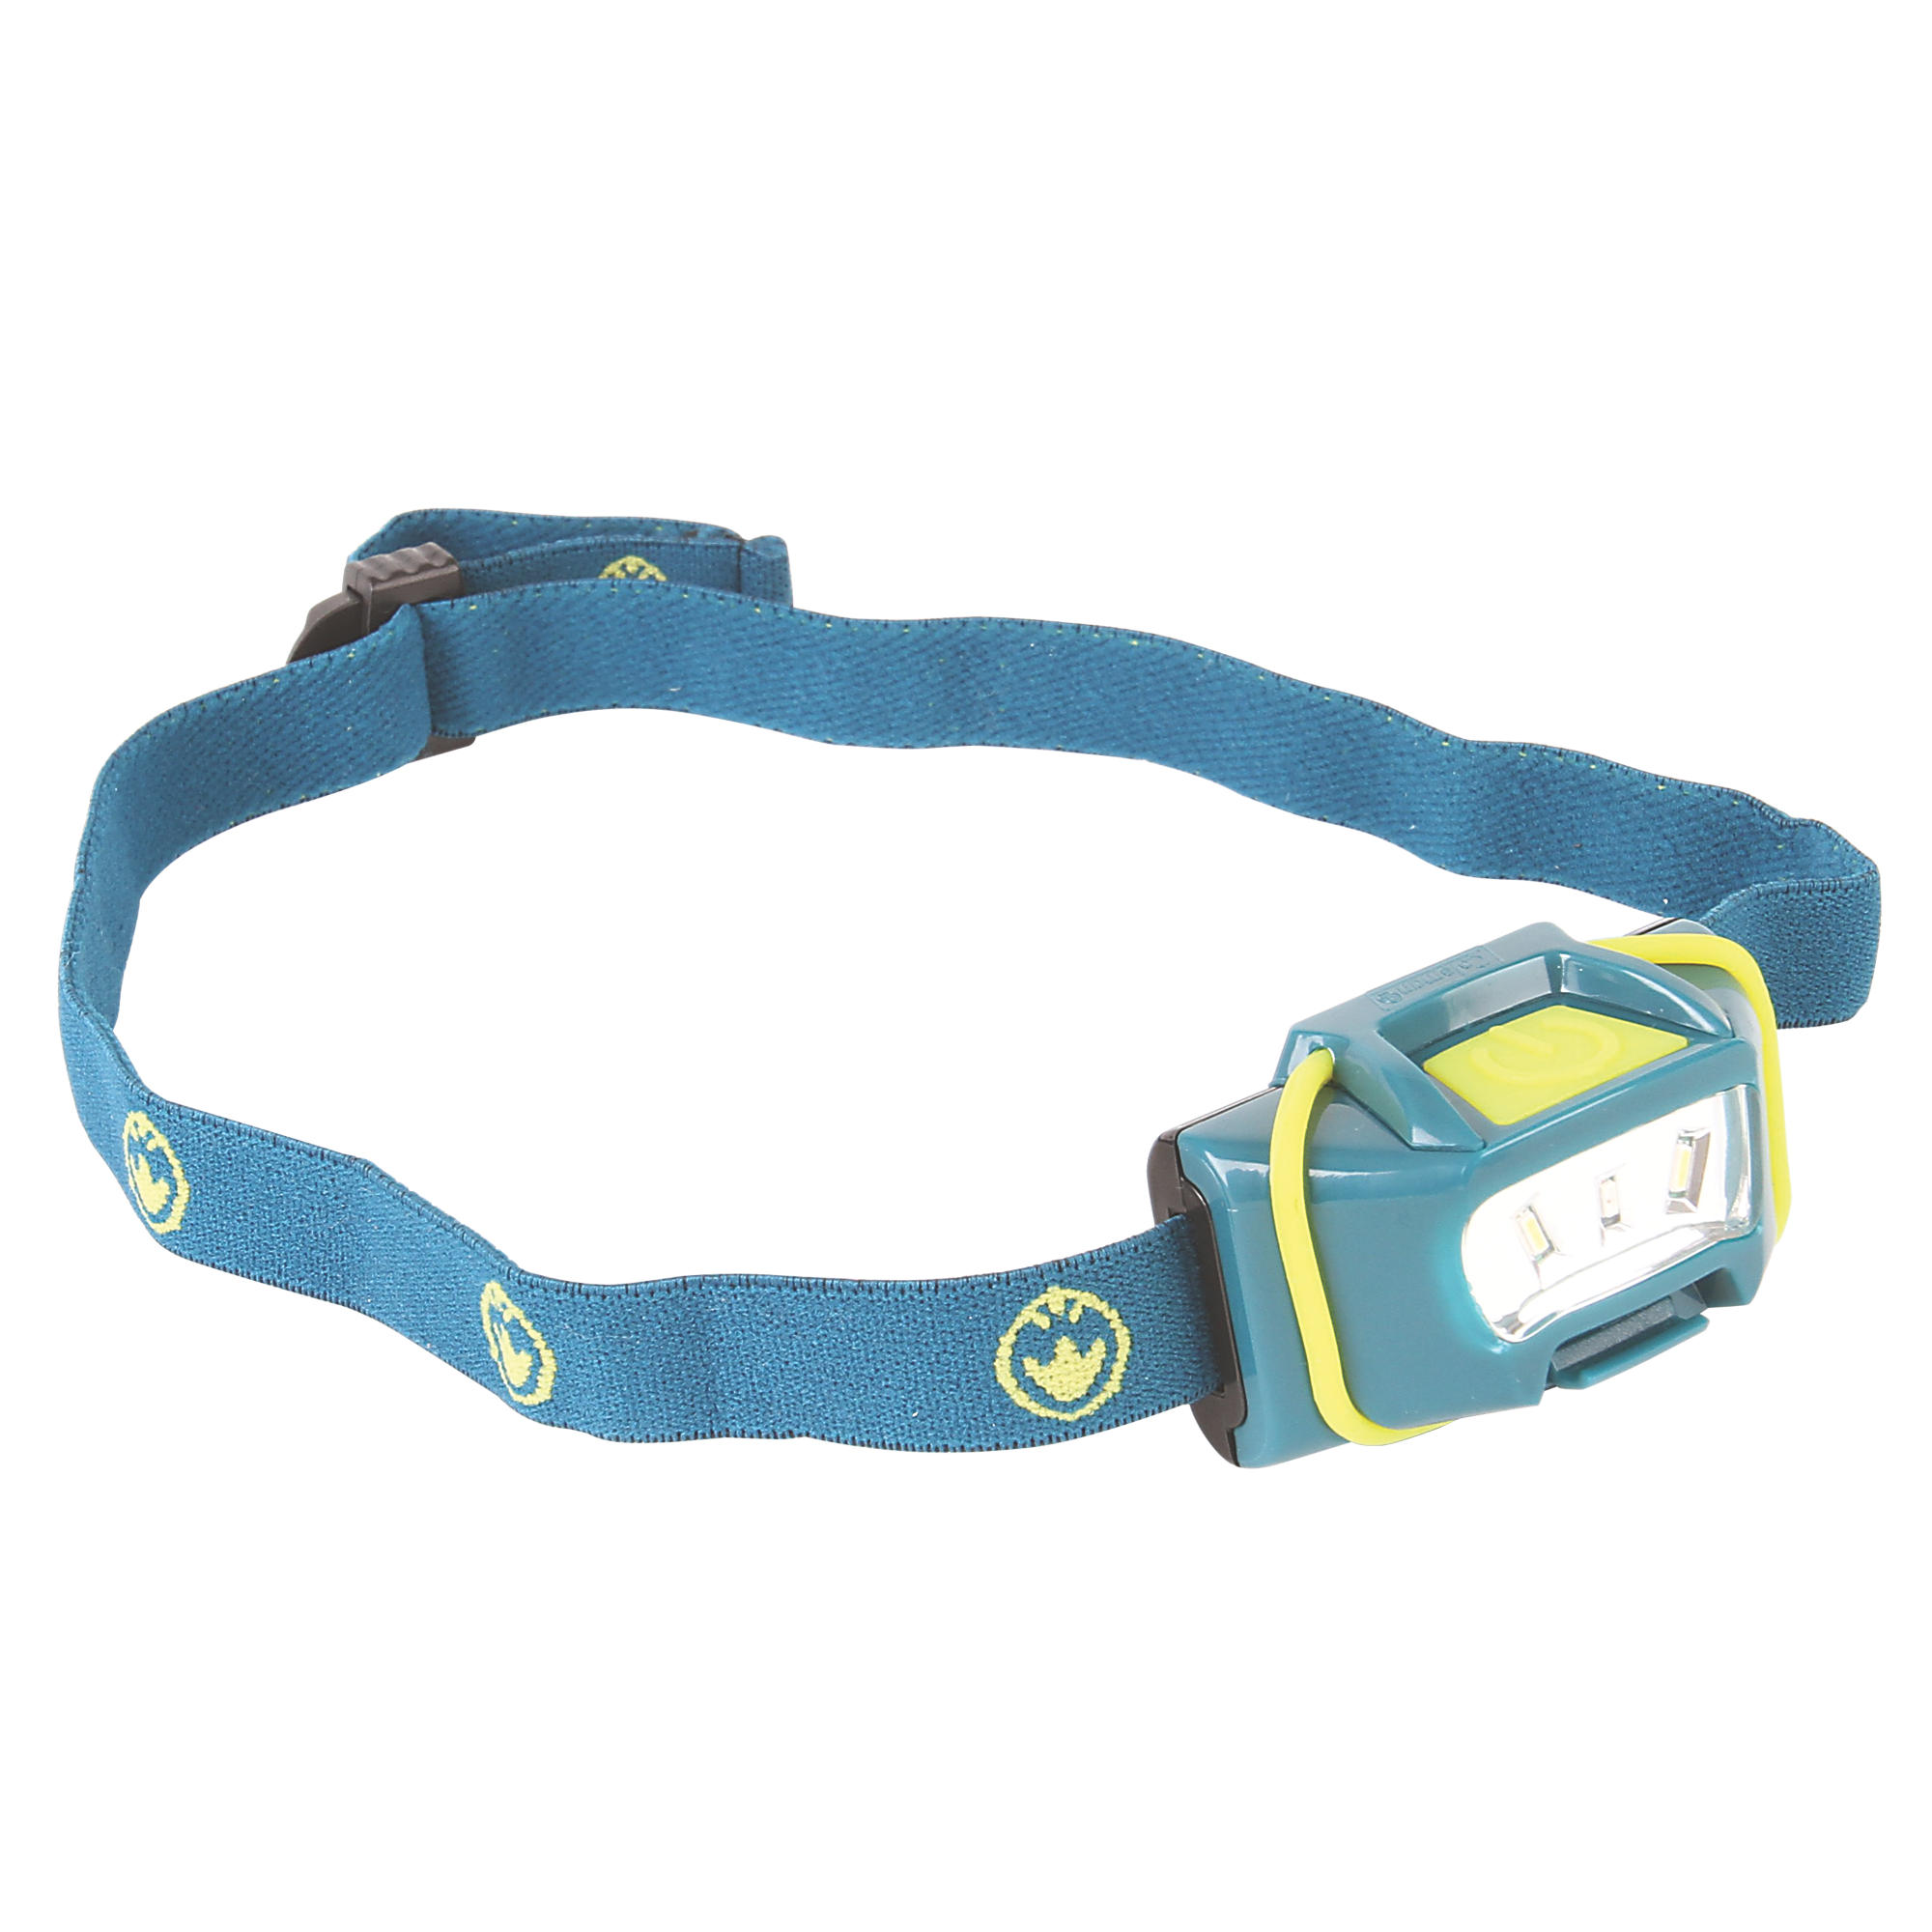 Youth Headlamp